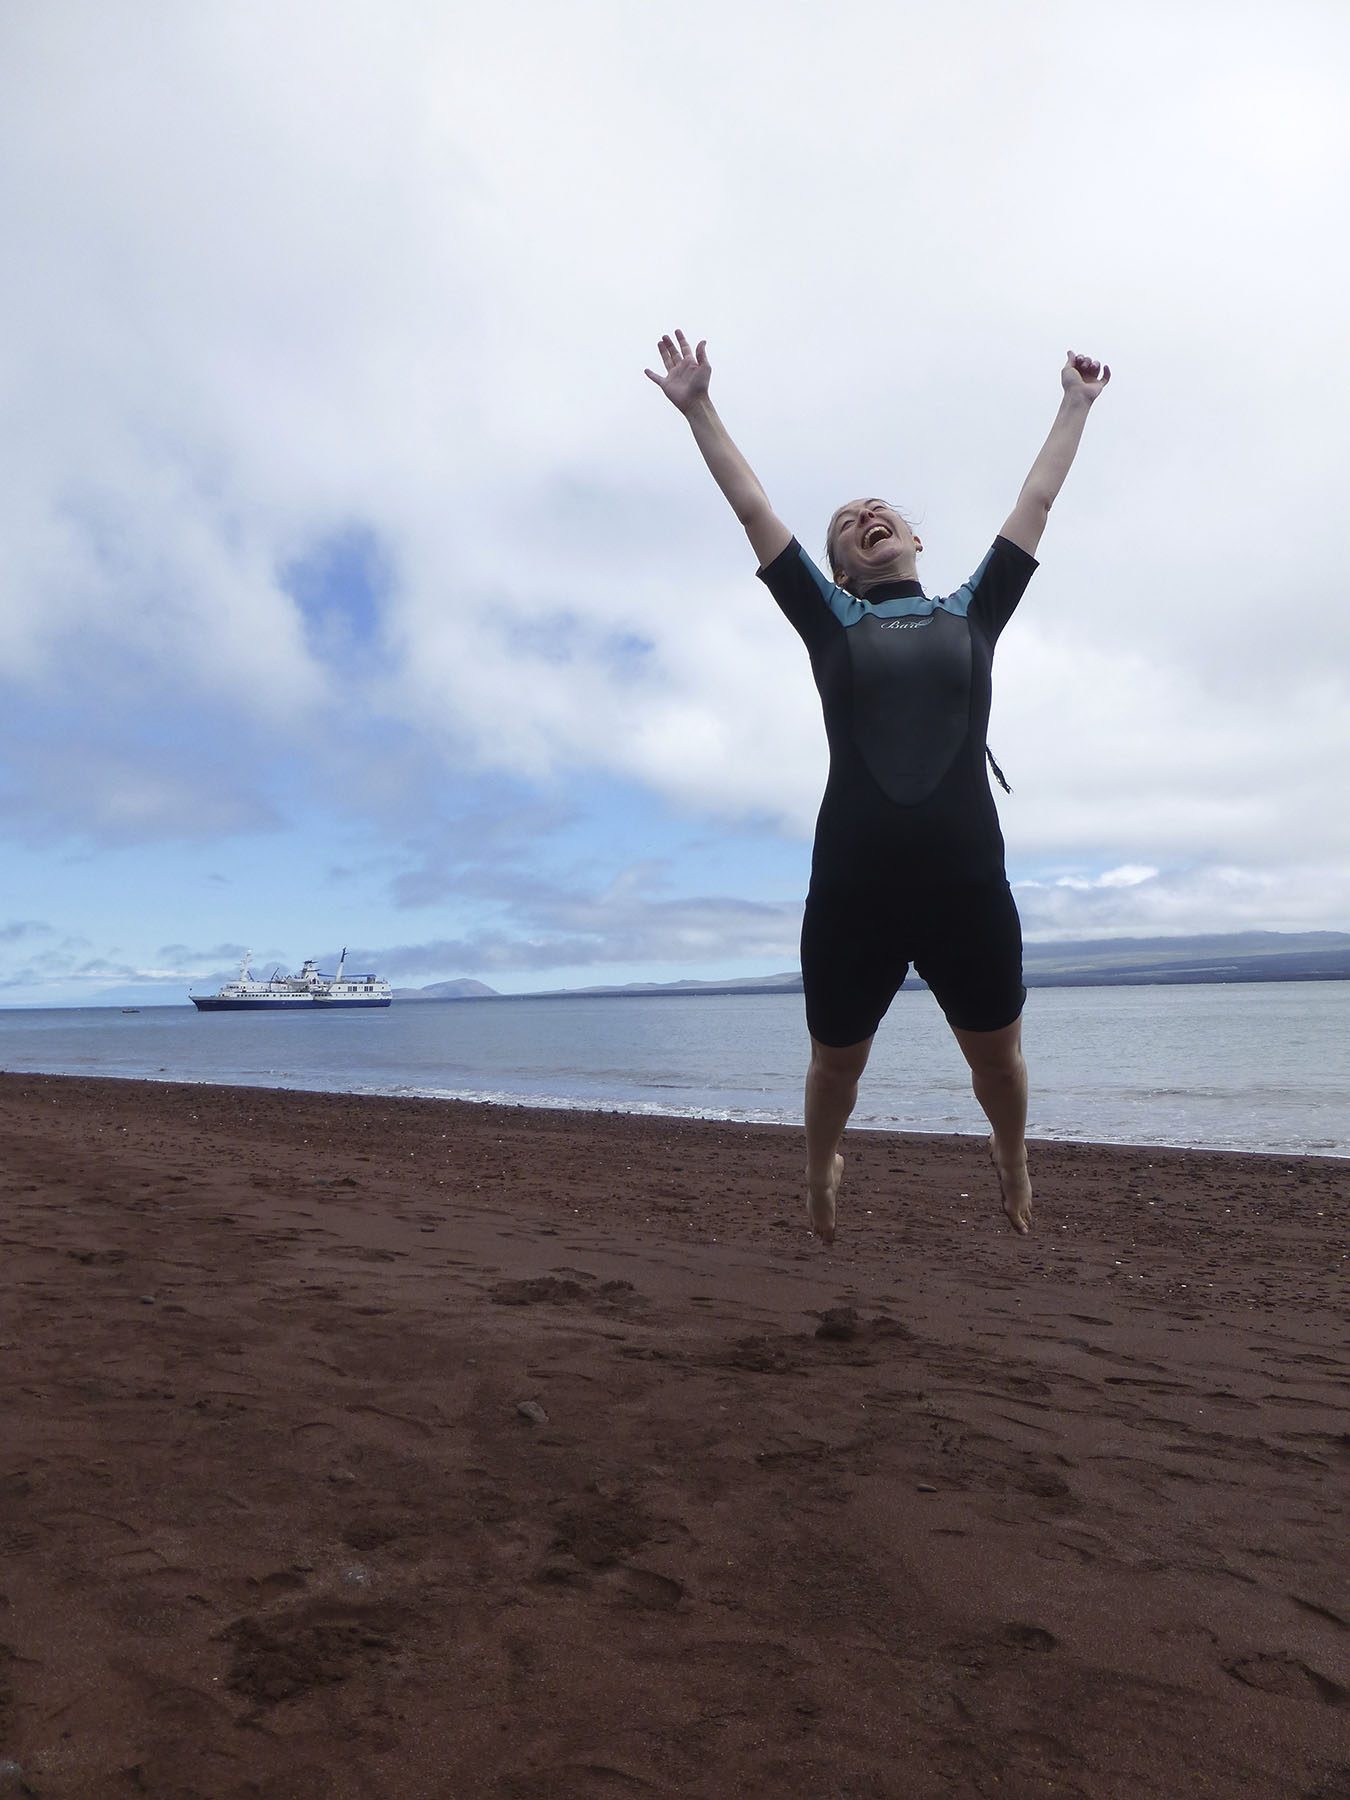 I'm jumping for joy to be on dry land!